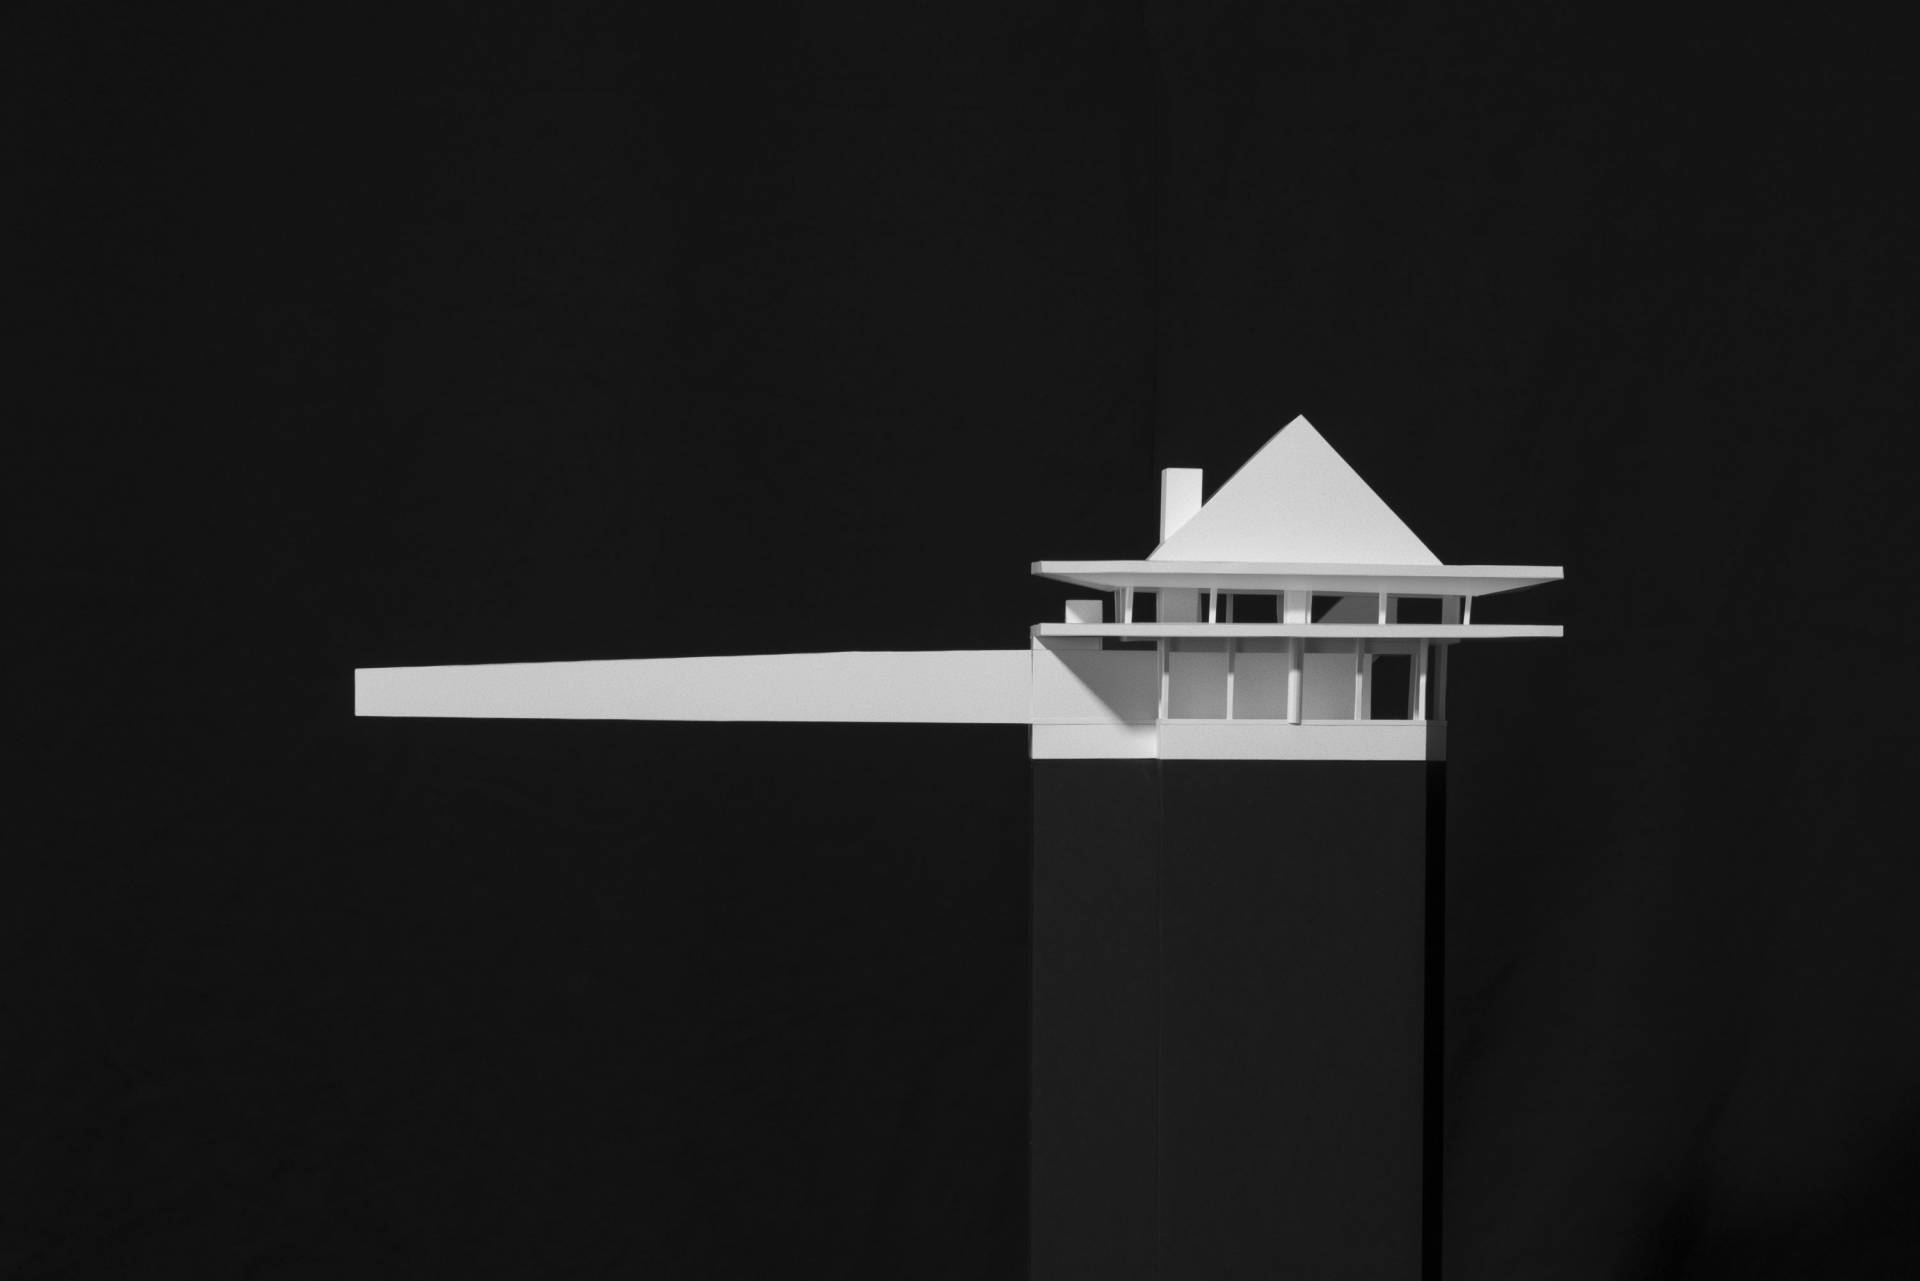 House number 3 in the architecture exhibit